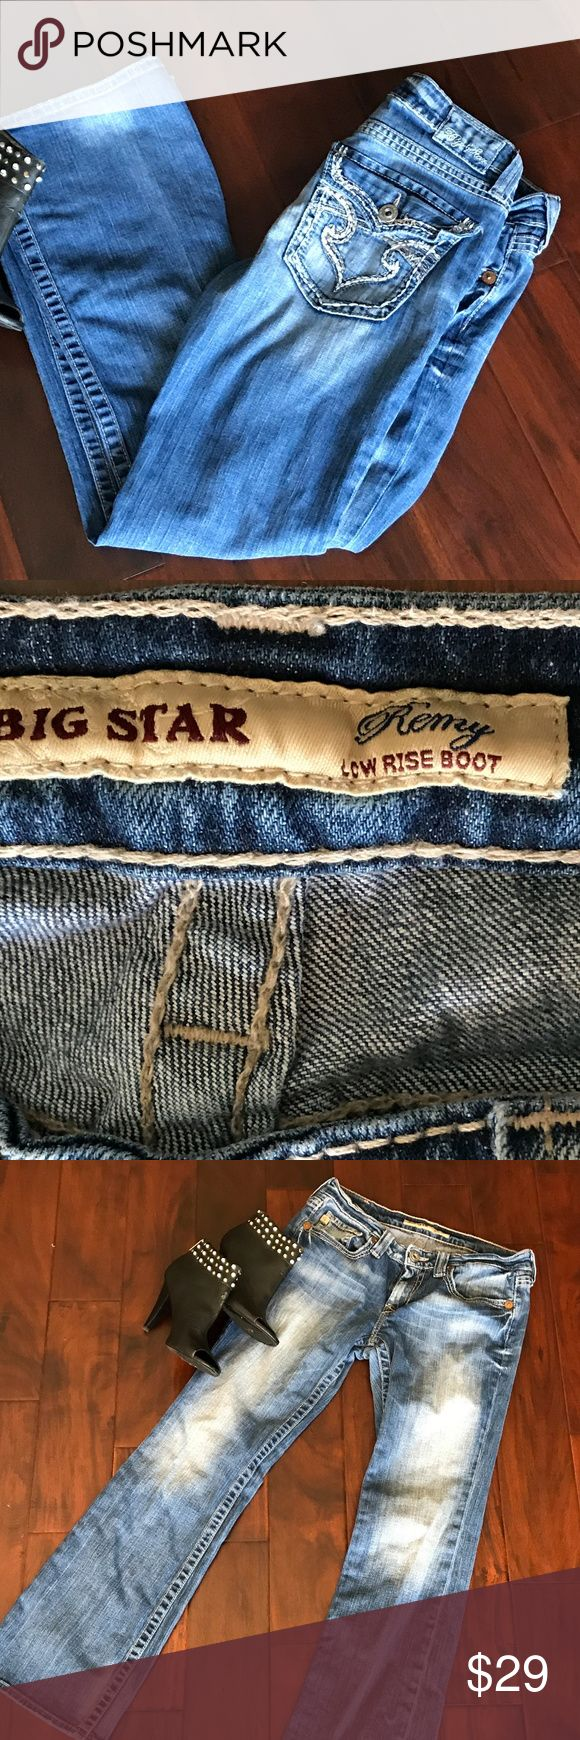 """Big Star Womens Jeans Remy Low Rise Boot Awesome Big Star Remy Low Rise Boot Cut Jeans.  29S  Medium denim with factory fading on thighs.  Flap style pockets in back with thick stitching.  Excellent pre-owned condition.    Waist = 16 laying flat"""".  Inseam = 31"""".  Rise is 8"""".  Leg opening = 9"""".  Smoke free home! Big Star Jeans Boot Cut"""